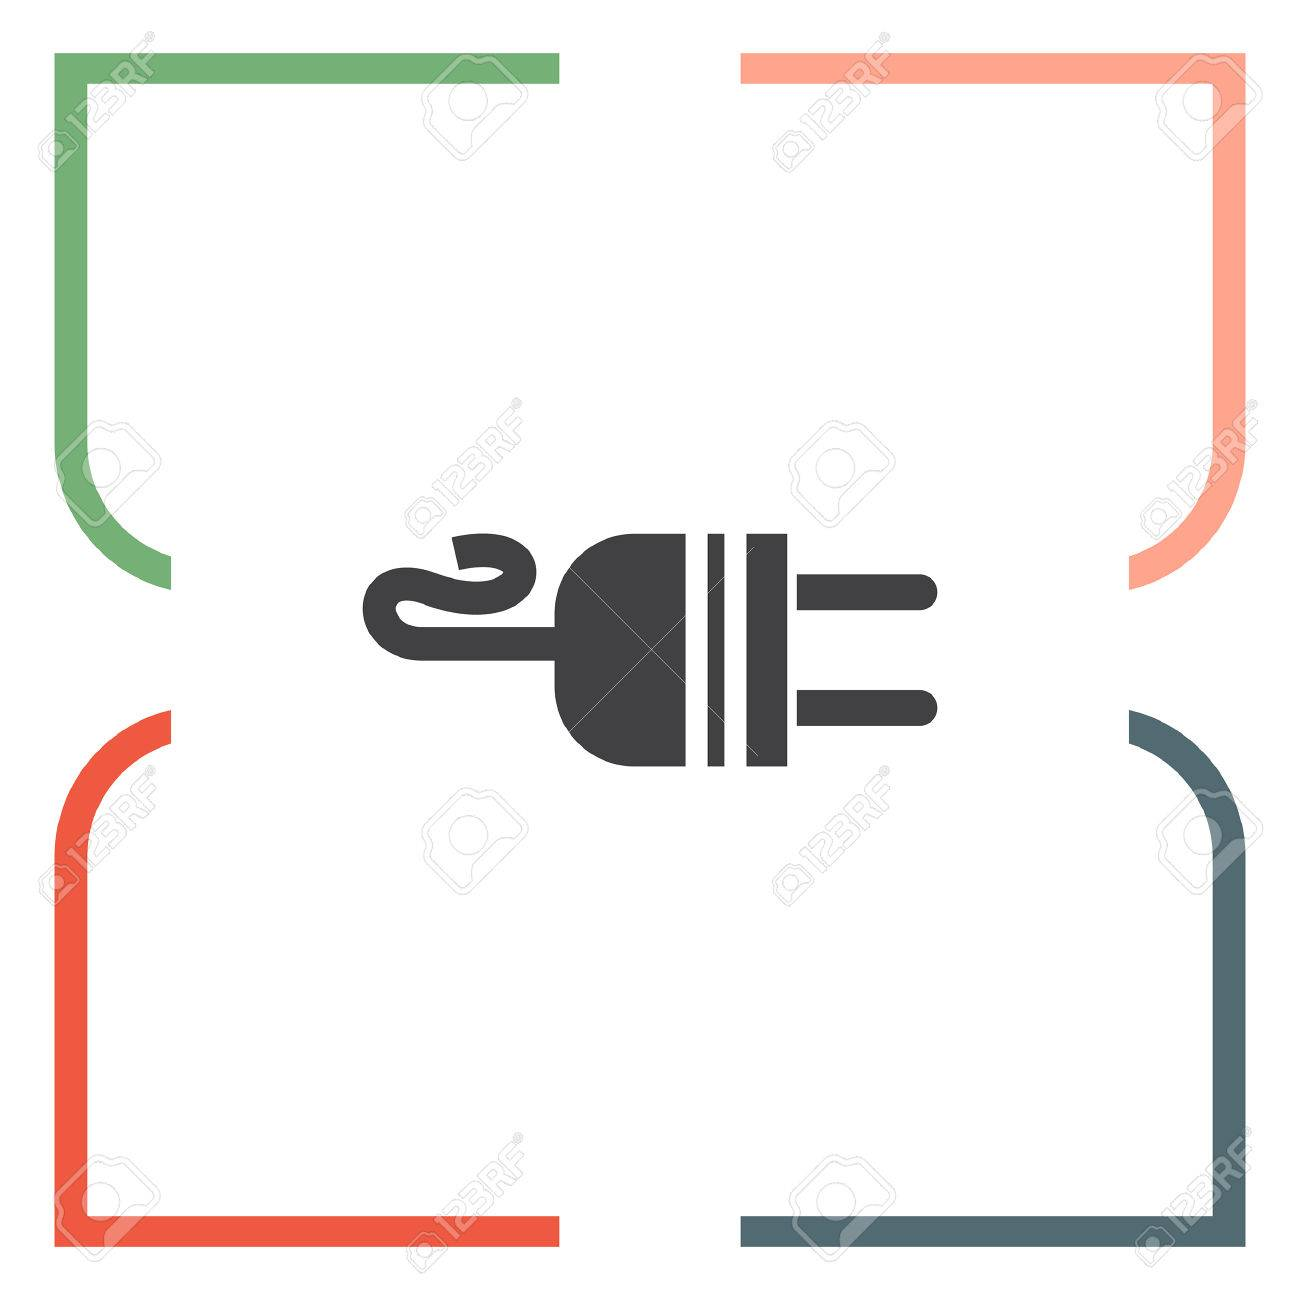 Fancy Power Outlet Symbol Adornment - Best Images for wiring diagram ...